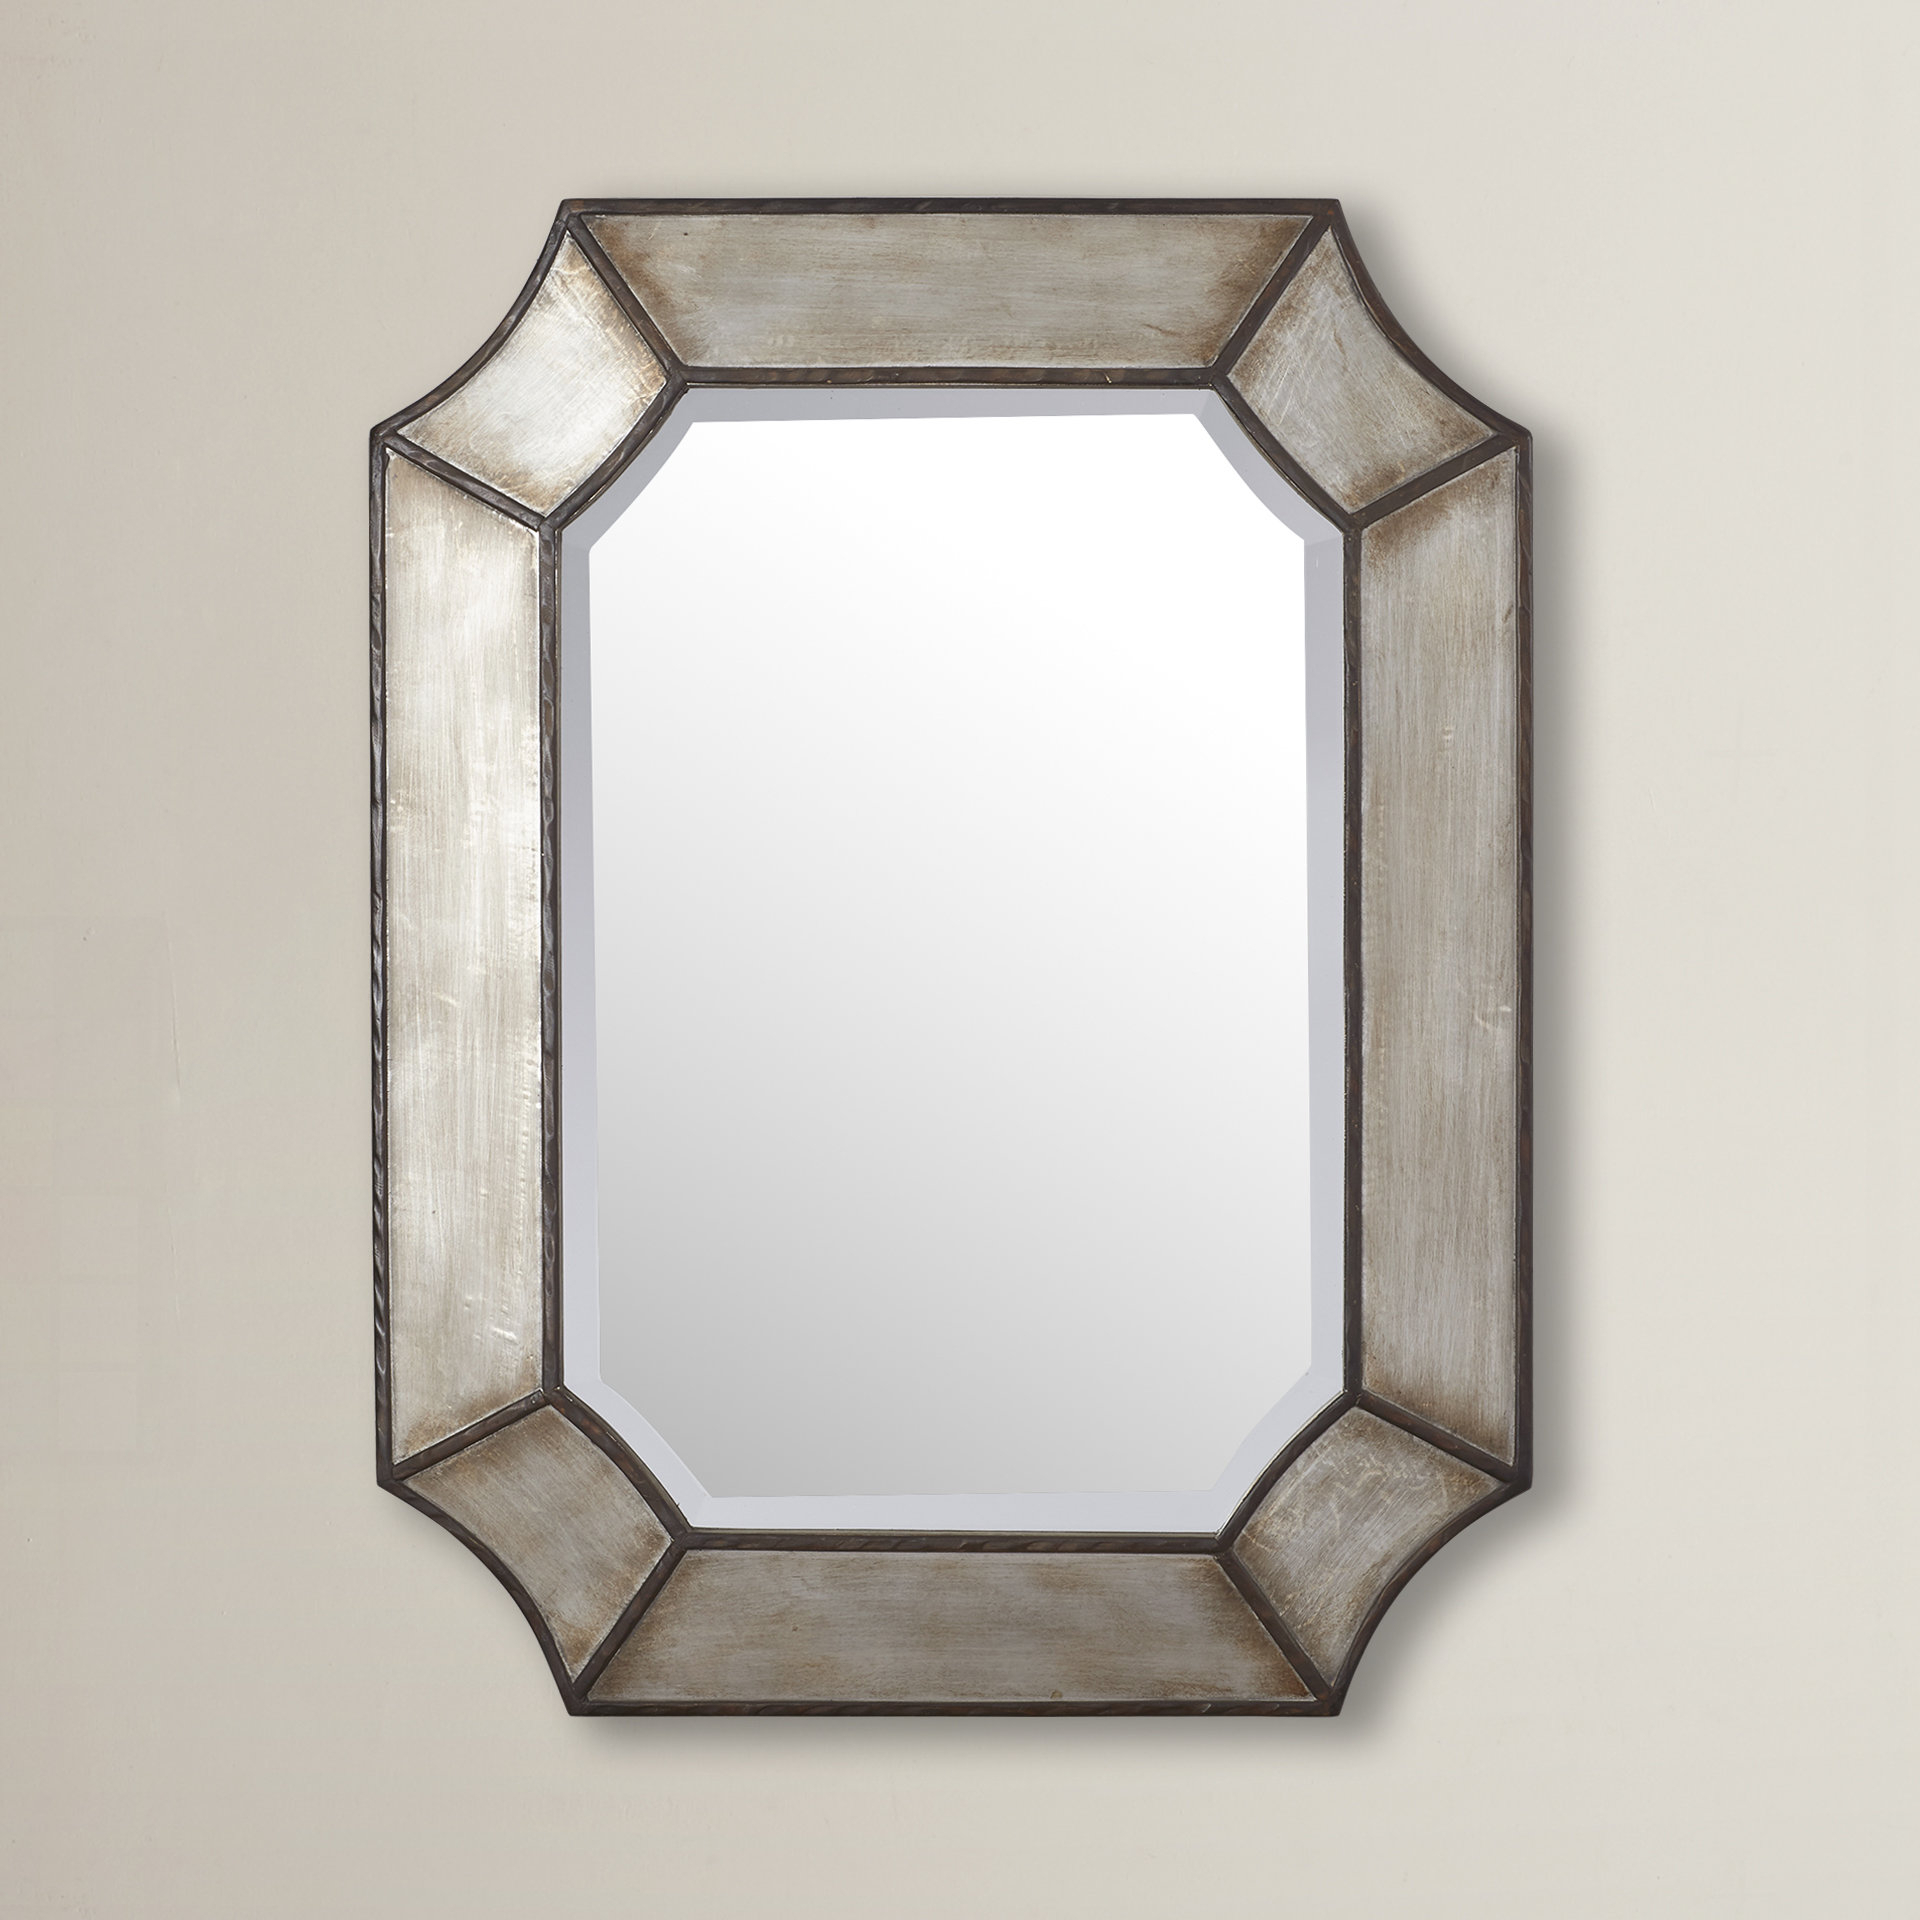 Farmhouse & Rustic Trent Austin Design Wall & Accent Mirrors intended for Bartolo Accent Mirrors (Image 15 of 30)